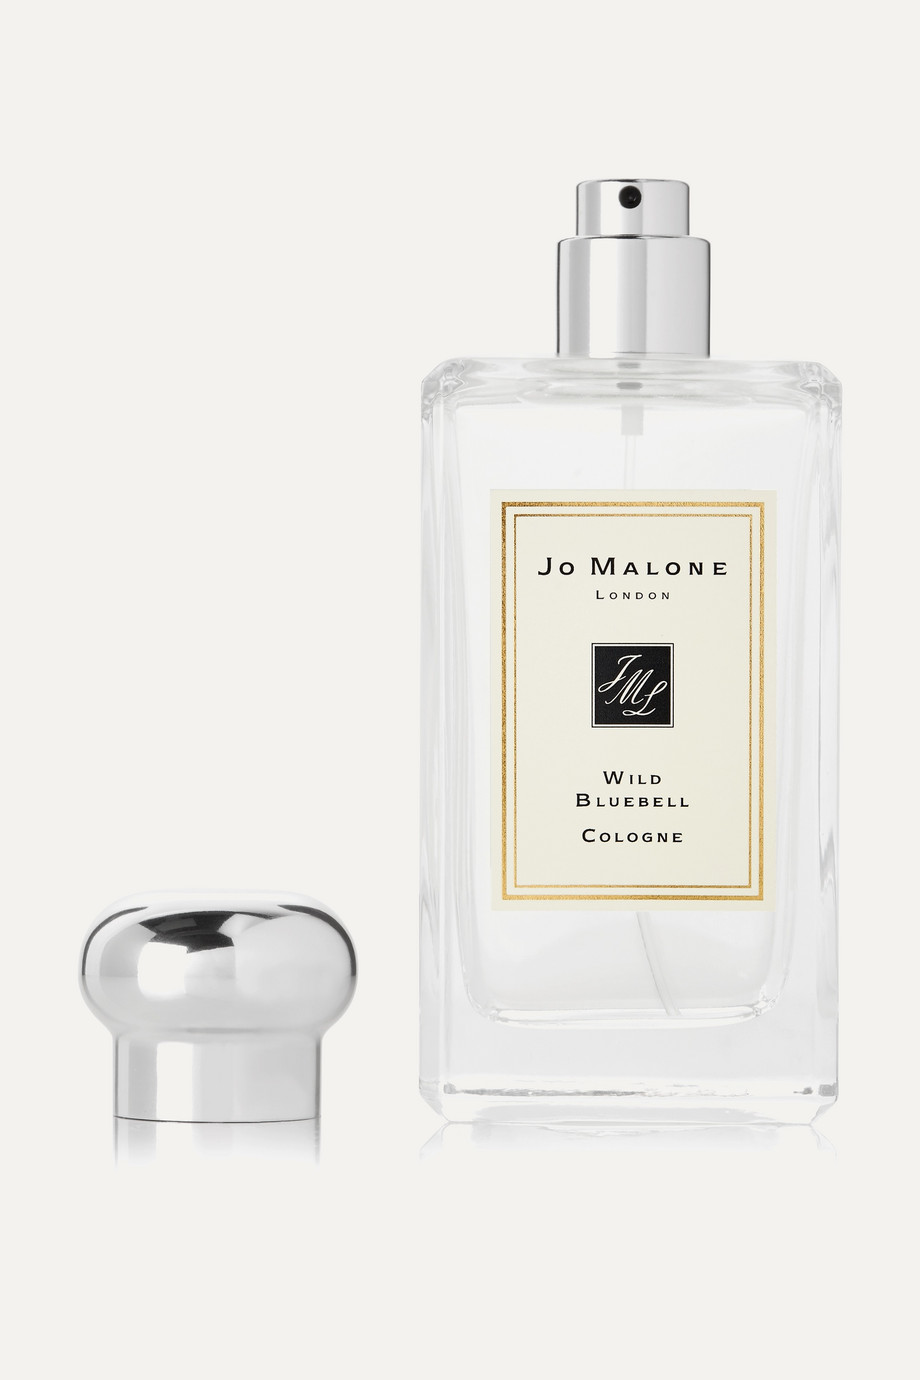 Jo Malone London Wild Bluebell Cologne, 100ml